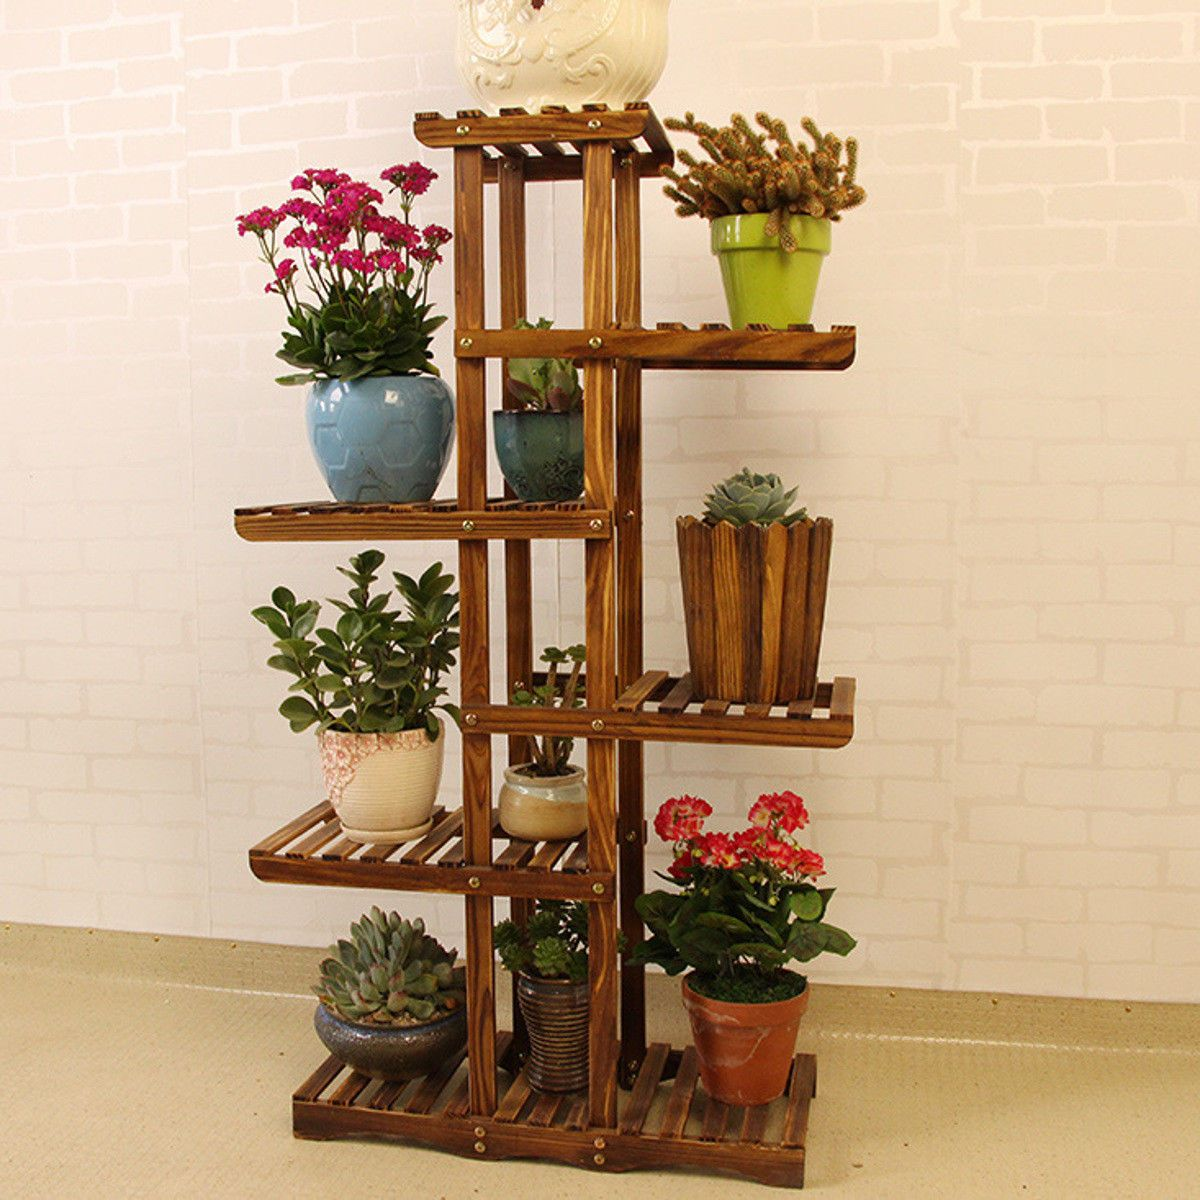 1x Plant Wooden Display Shelf Type Plant Stand Not The Plant Water Proof Indoor Or O Wooden Plant Stands Indoor Wooden Plant Stands Plant Stand